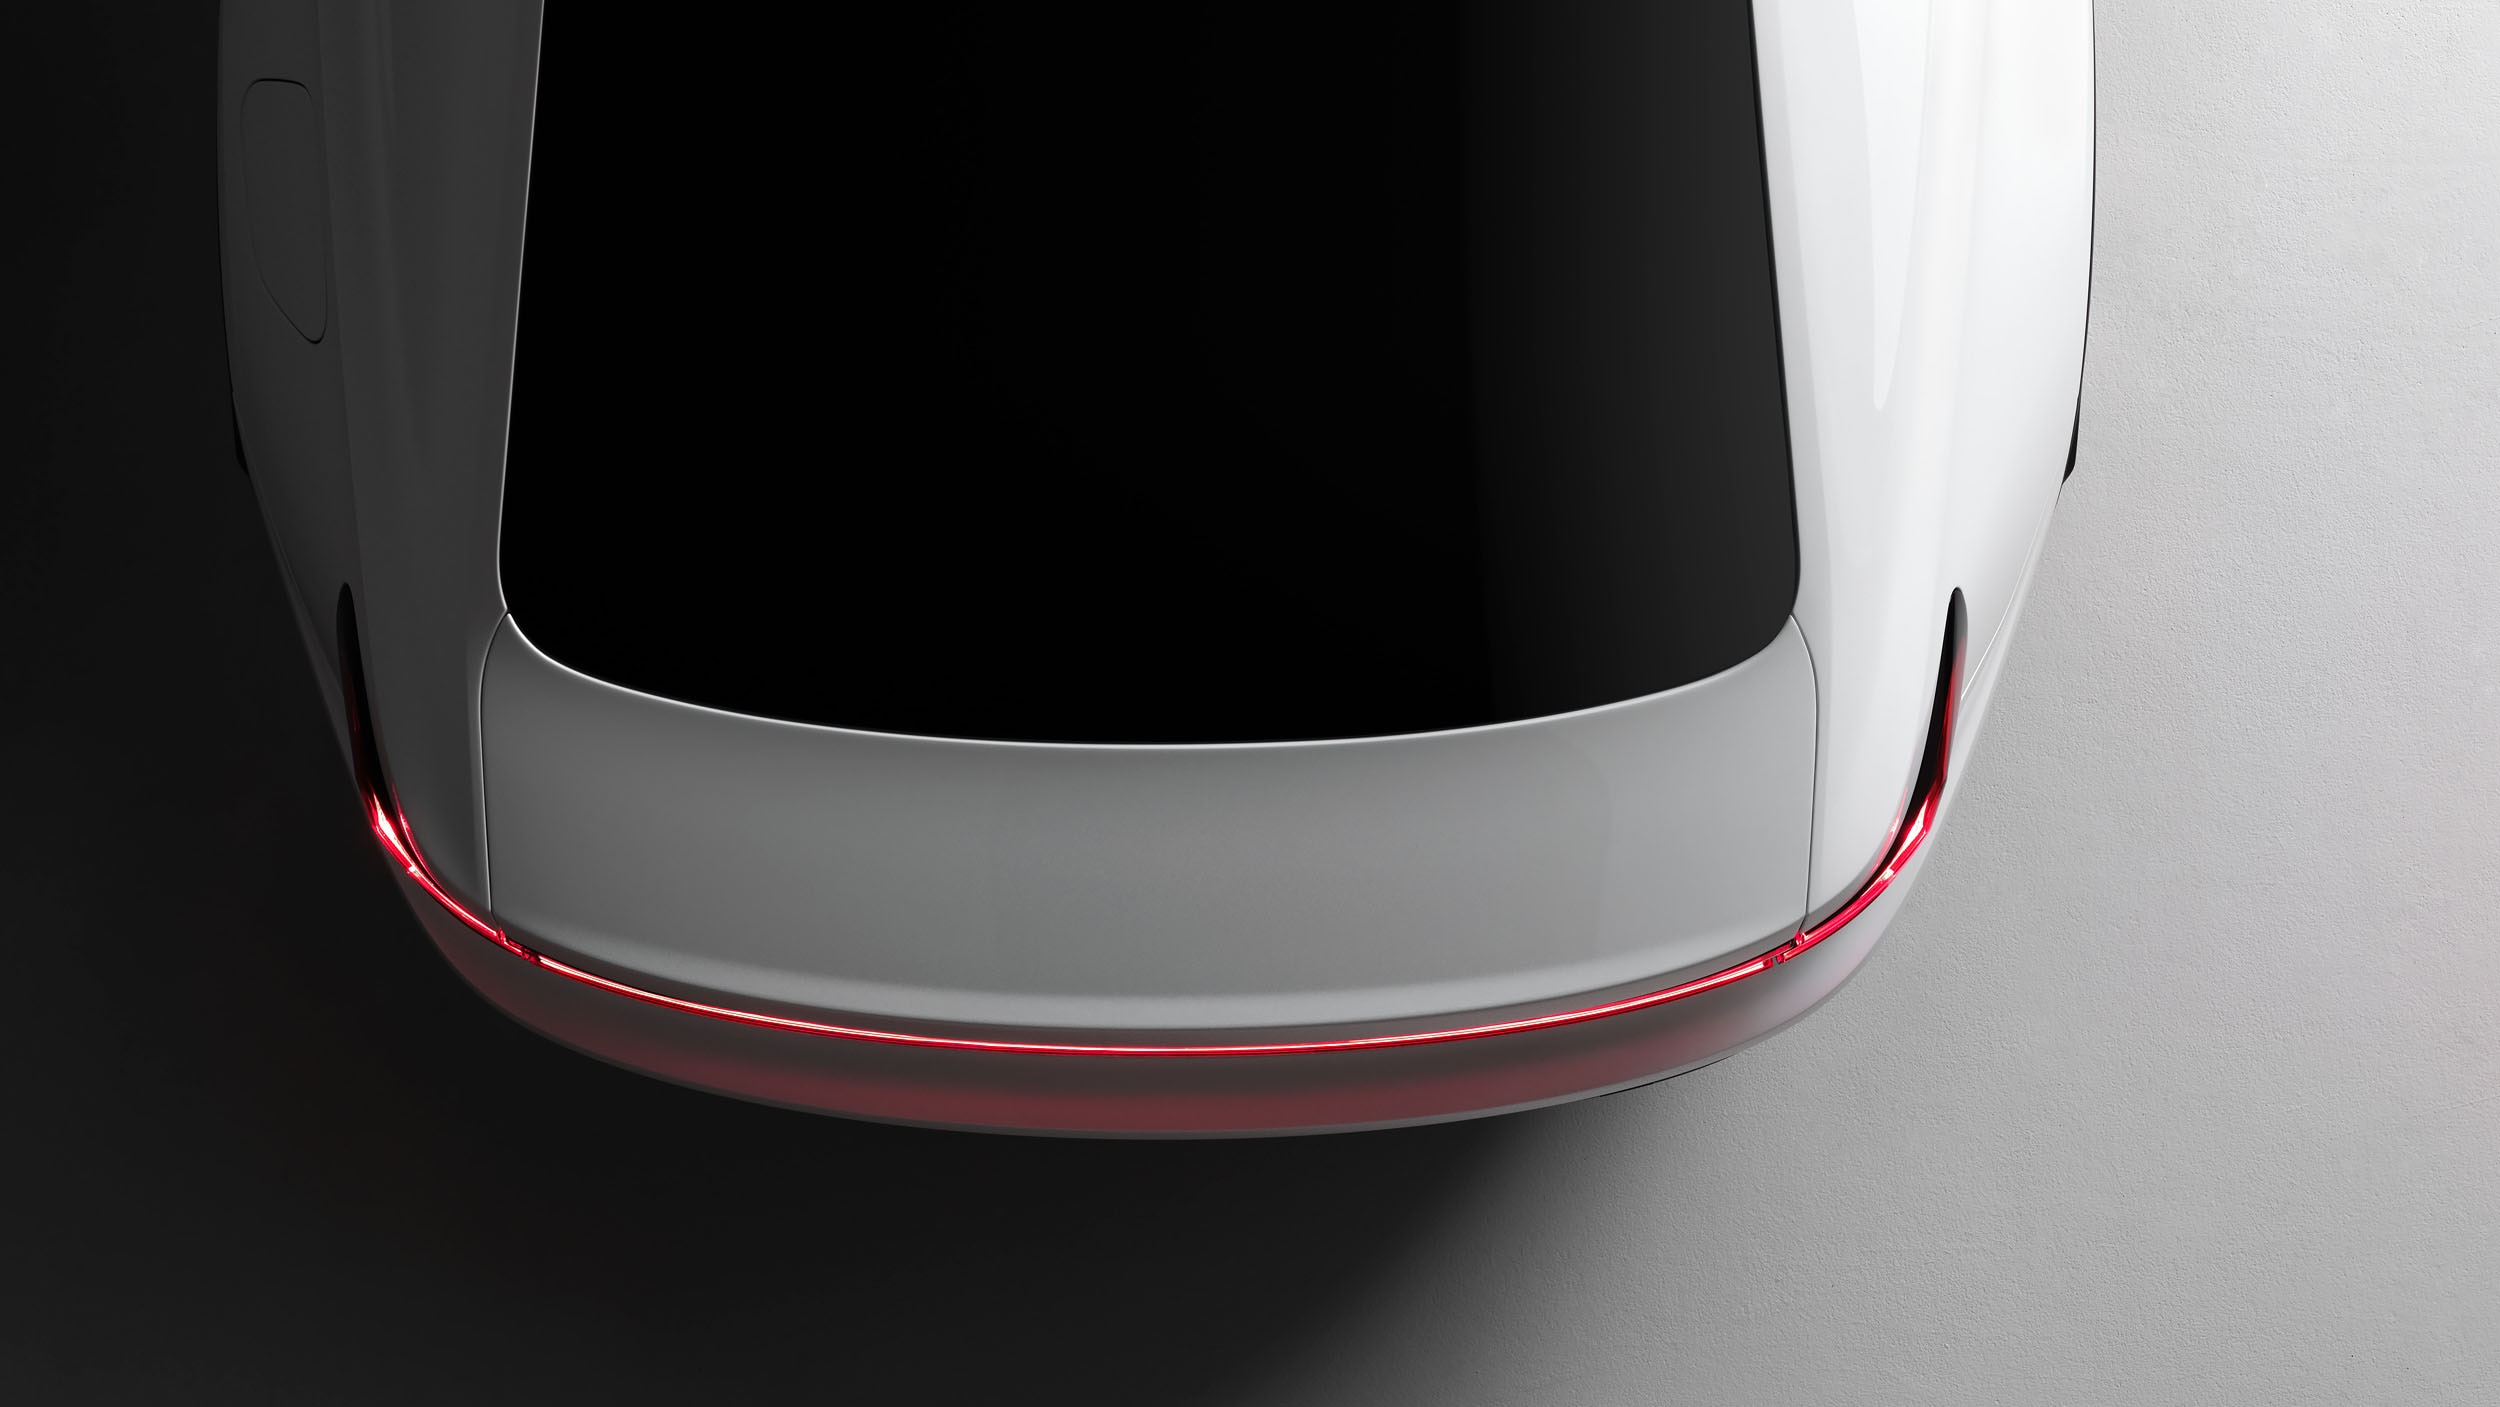 Polestar 2 gets teased - up to 483 km of range, 400 hp